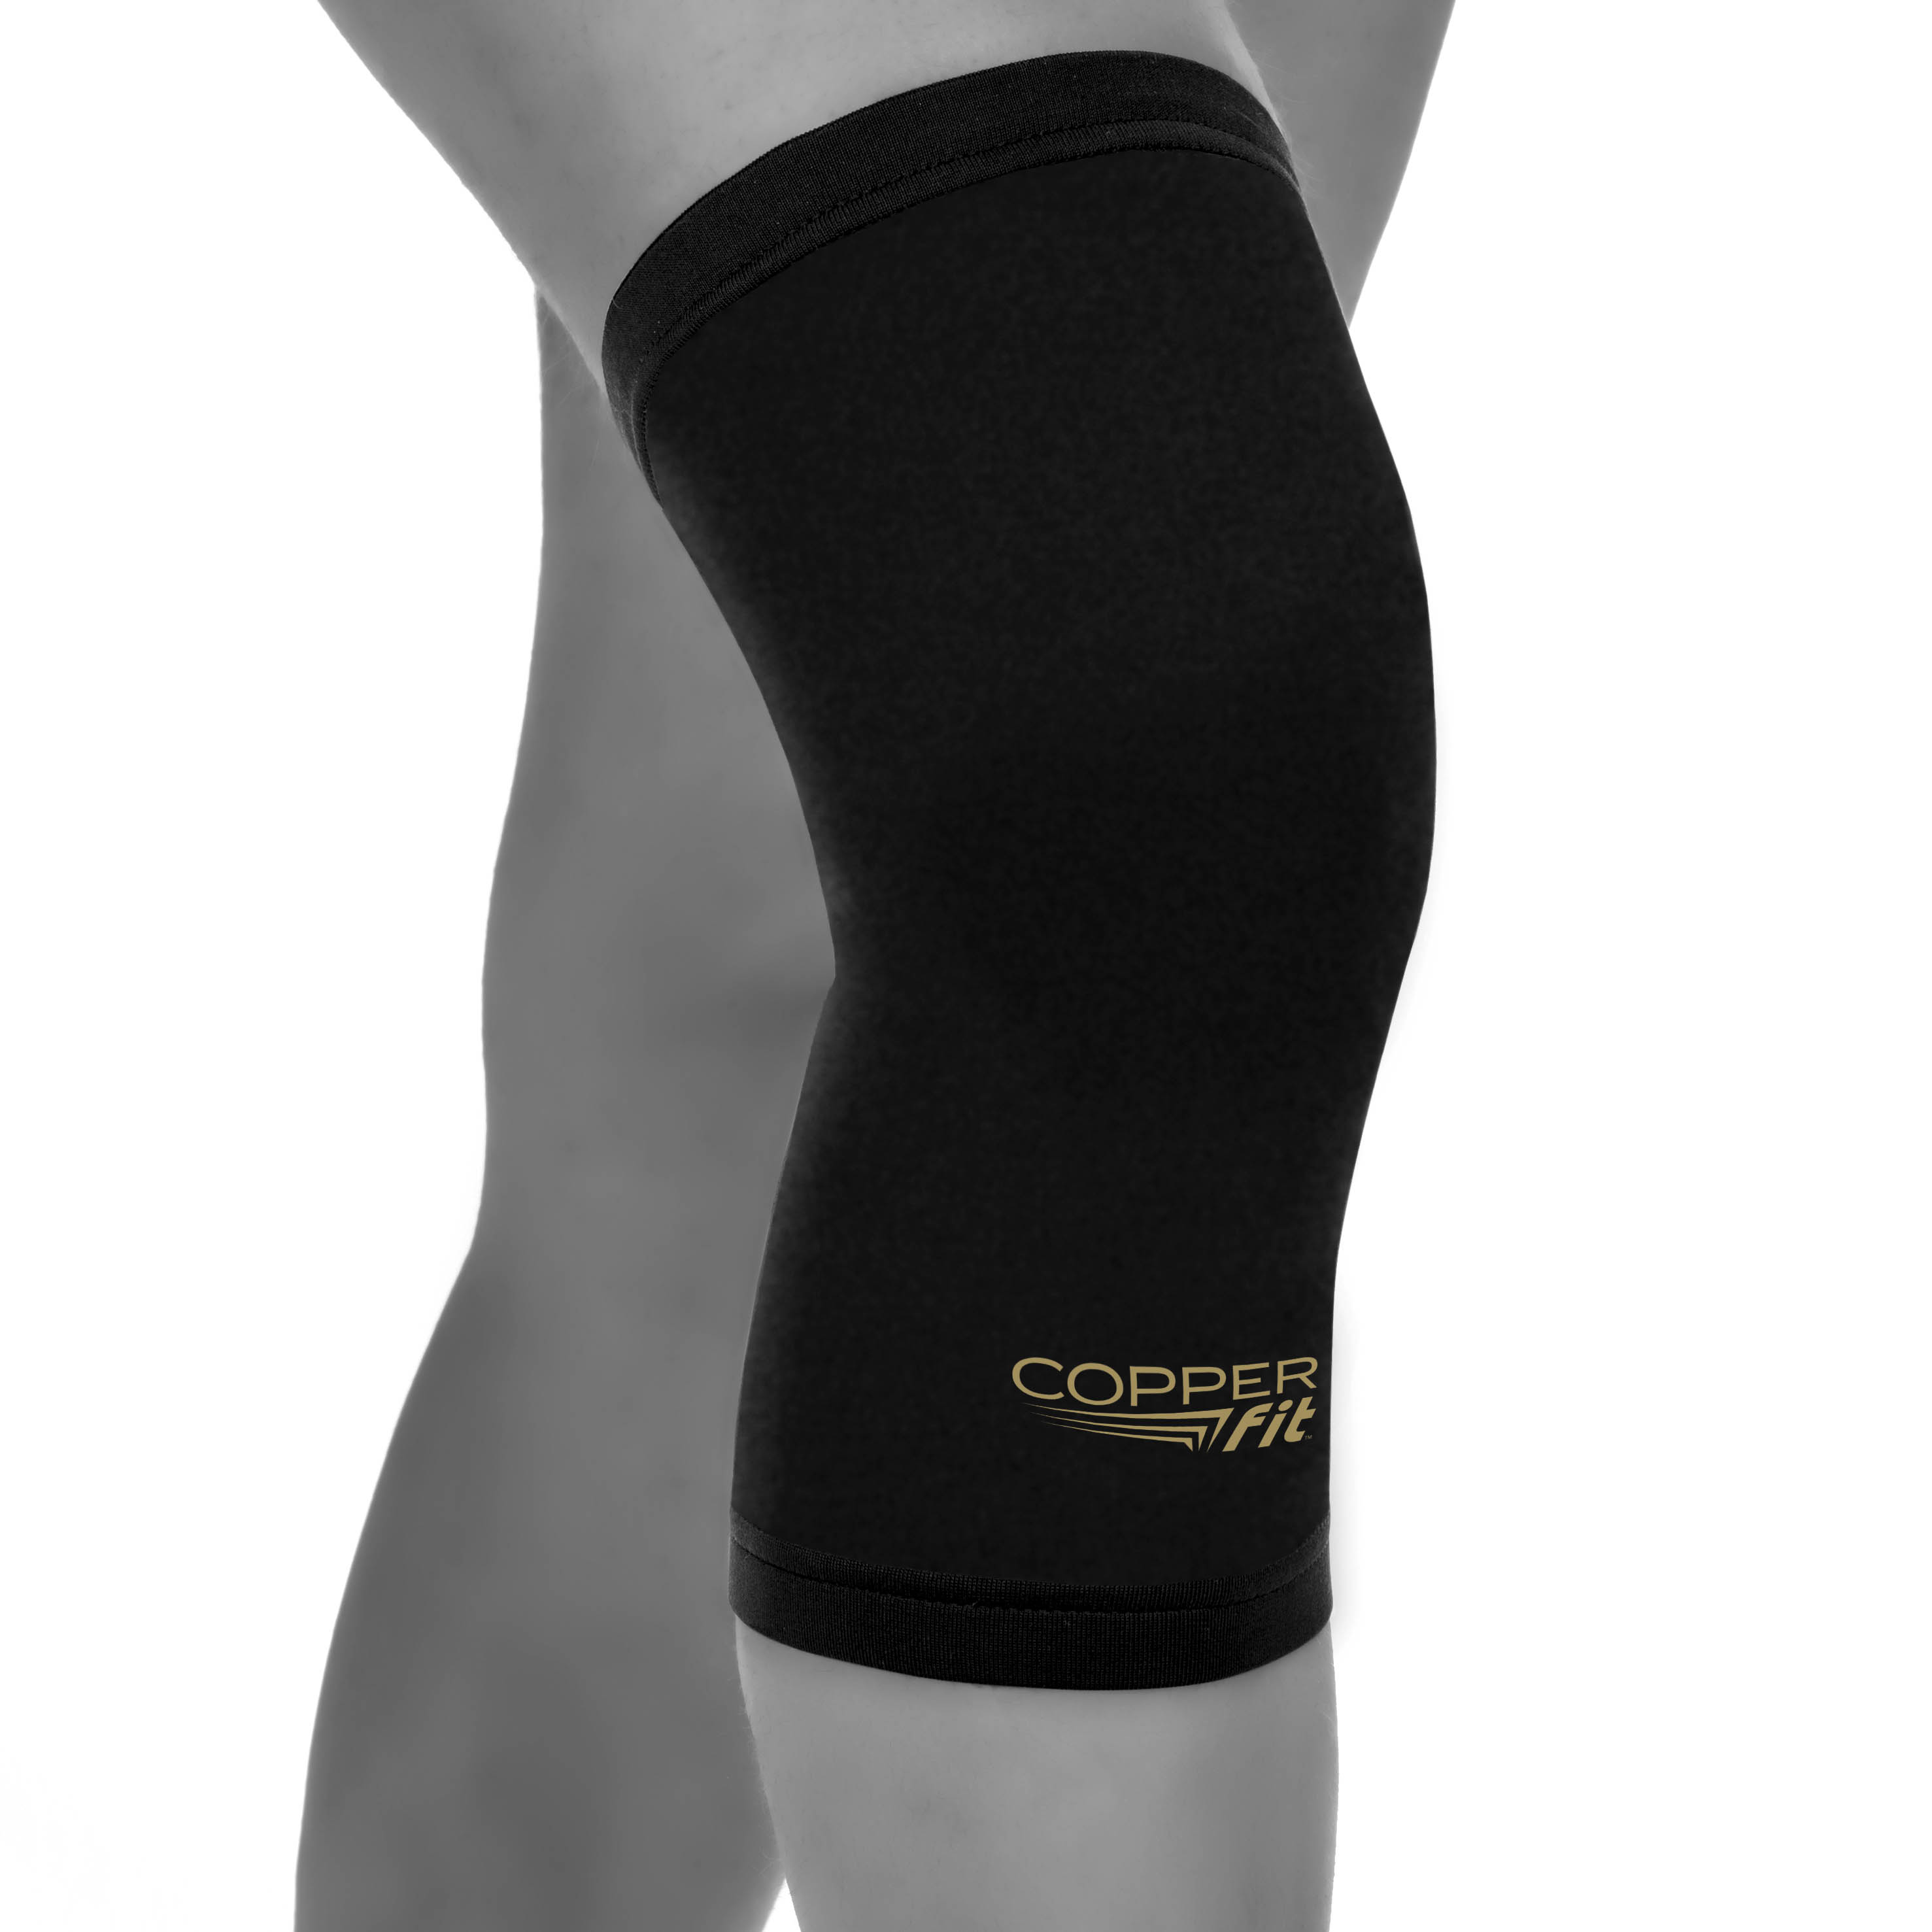 Copper Fit Compression Knee Sleeve, Large